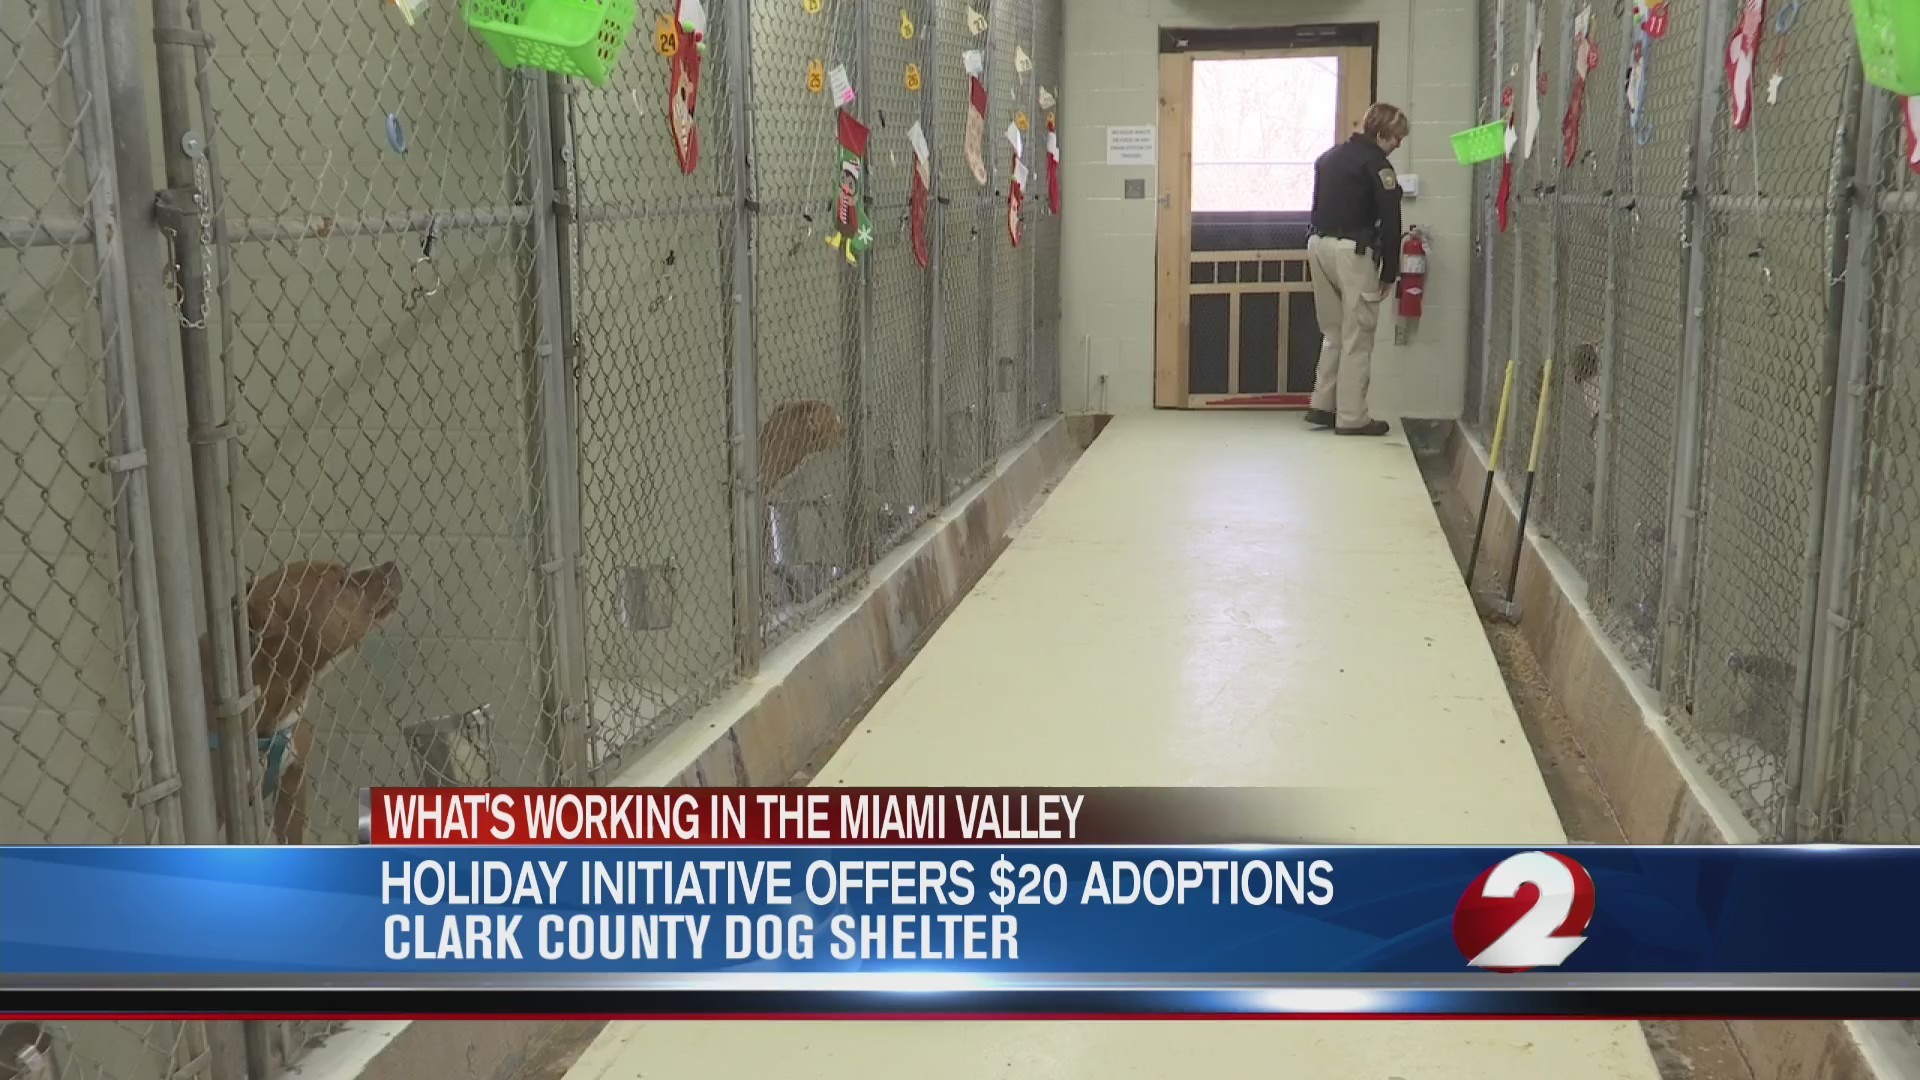 Holiday initiative offers $20 adoptions